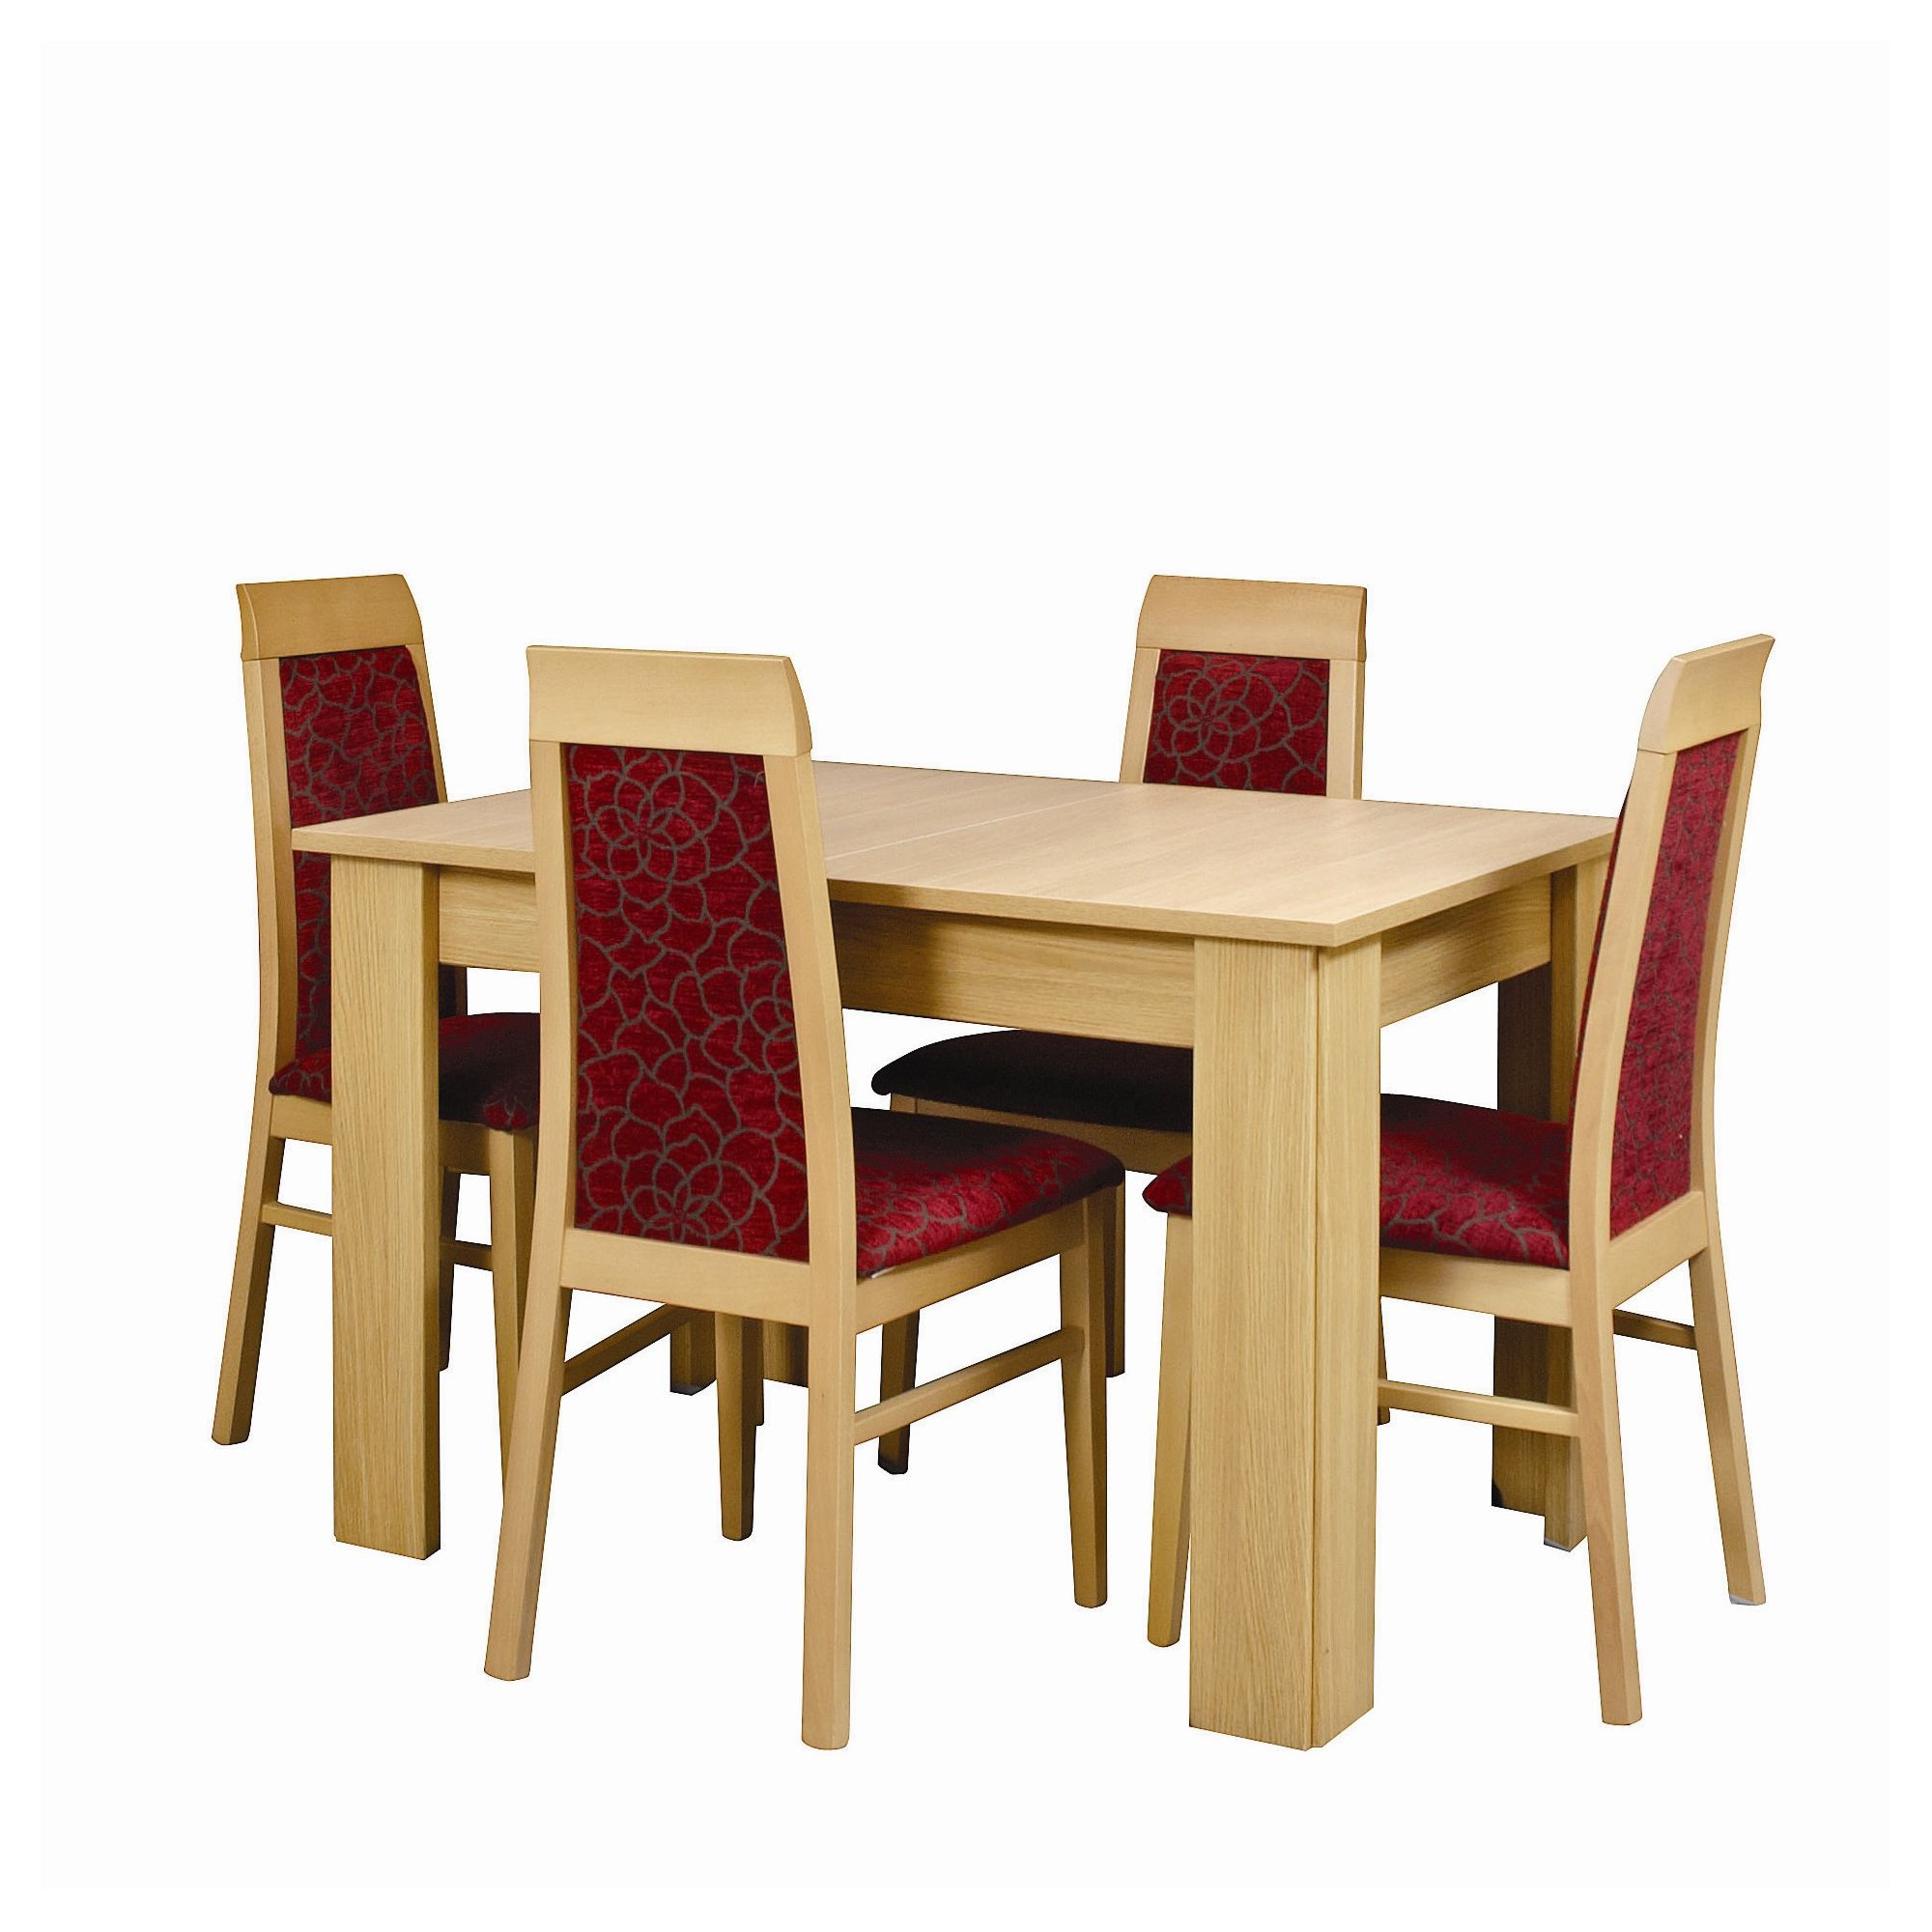 Caxton Huxley Dining Table Set with 4 Upholstered Dining Chairs in Light Oak at Tesco Direct